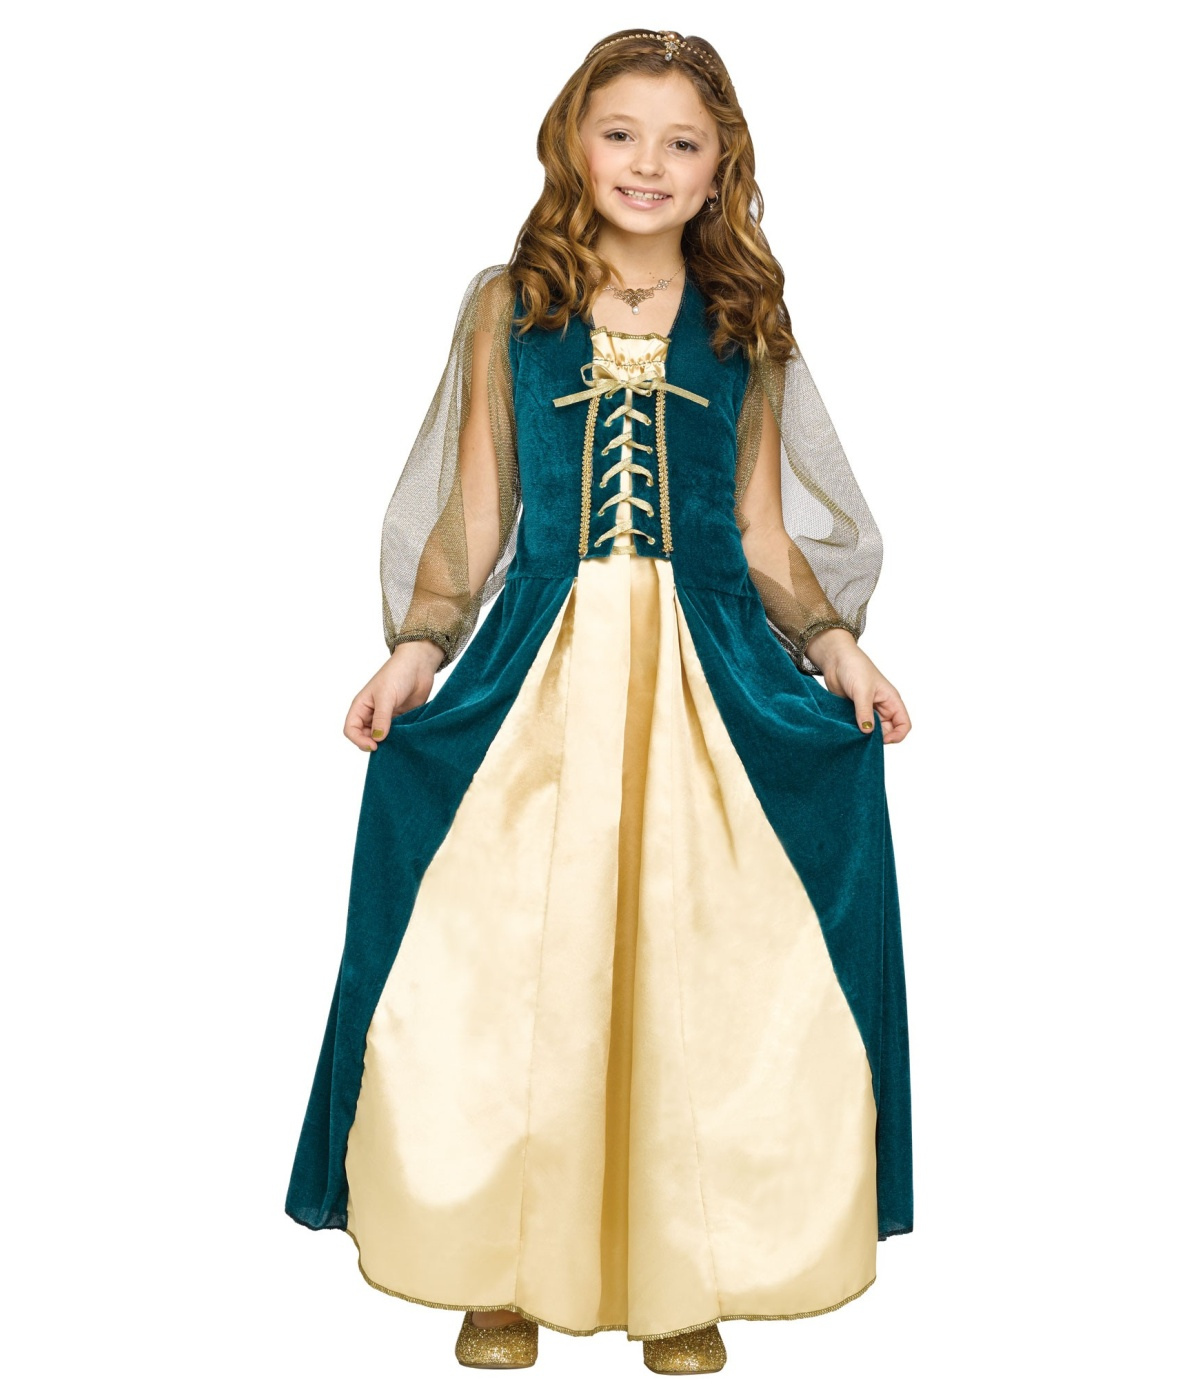 Romeos Juliet Renaissance Girls Costume  sc 1 st  Halloween Costumes : renaissance girl costume  - Germanpascual.Com